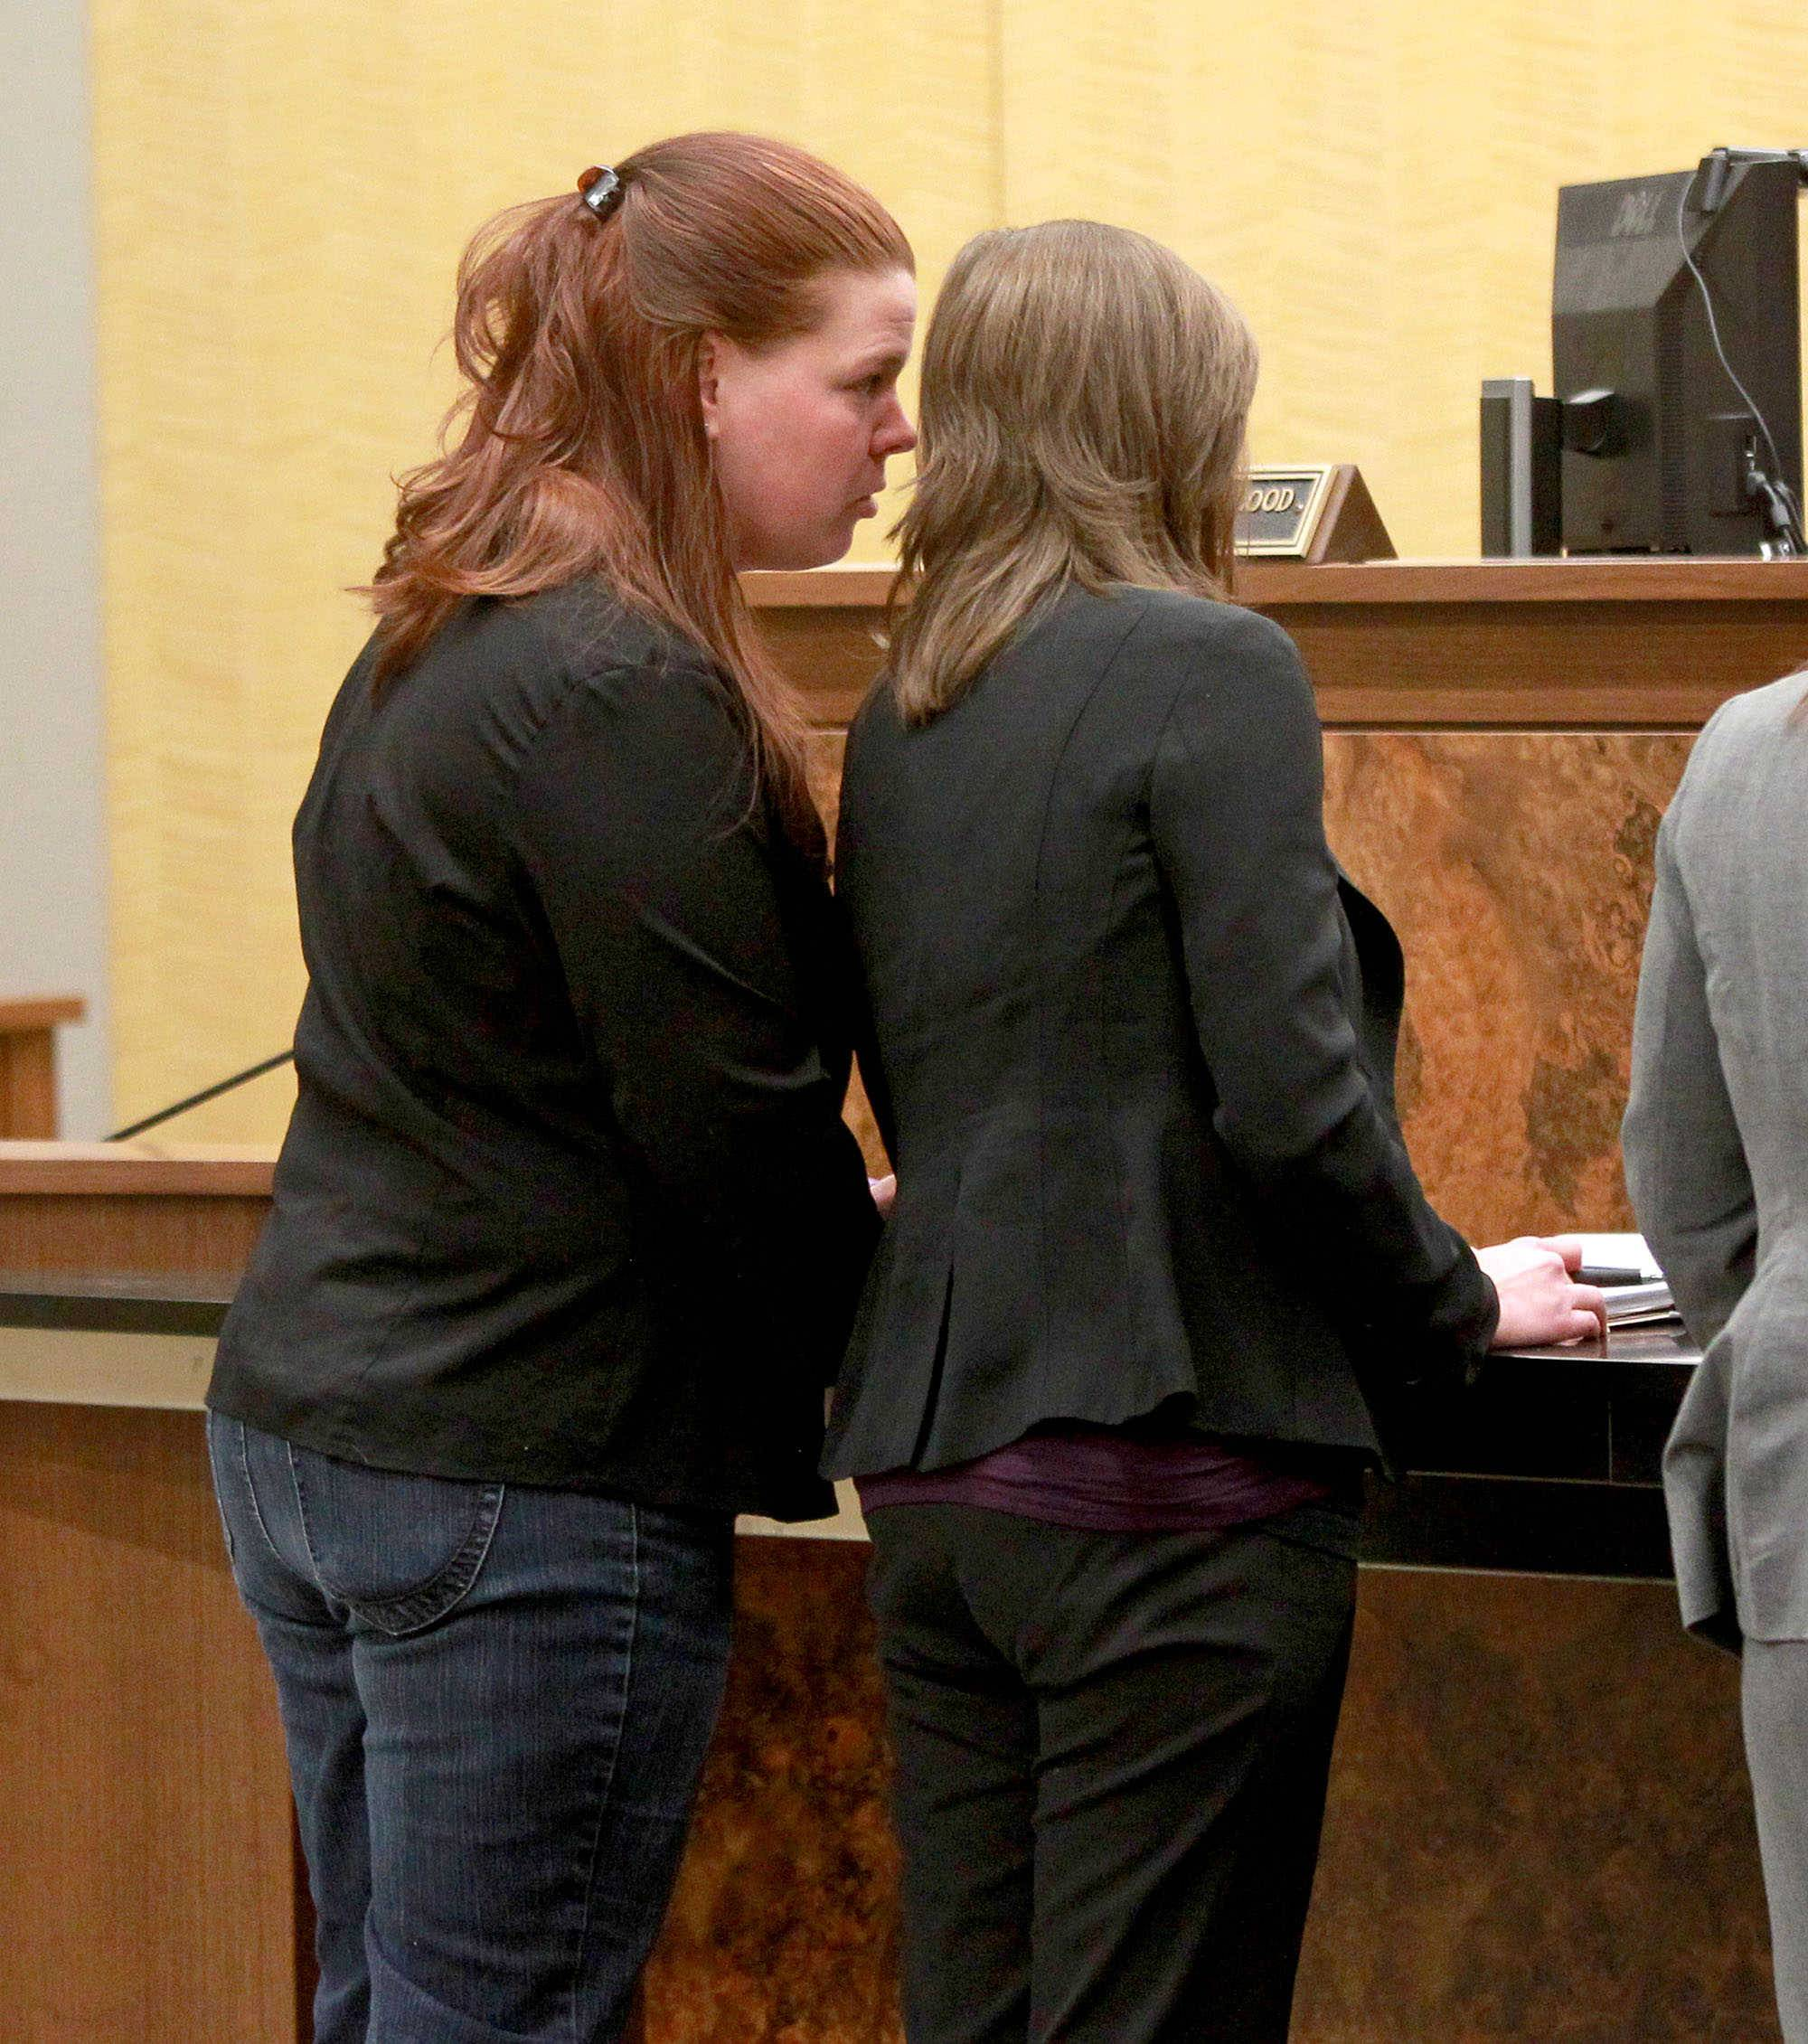 Stacy Fiebelkorn (far left) confers with her attorney, Alexis Costello, during an appearance before Kane County Associate Judge Elizabeth Flood at the Kane County Branch Court in St. Charles Thursday regarding a ruling on a gag order sought by Fiebelkorn's attorney to stop comments outside of court by county officials. Fiebelkorn has been charged with animal cruelty and neglect, two misdemeanor charges which are still pending.